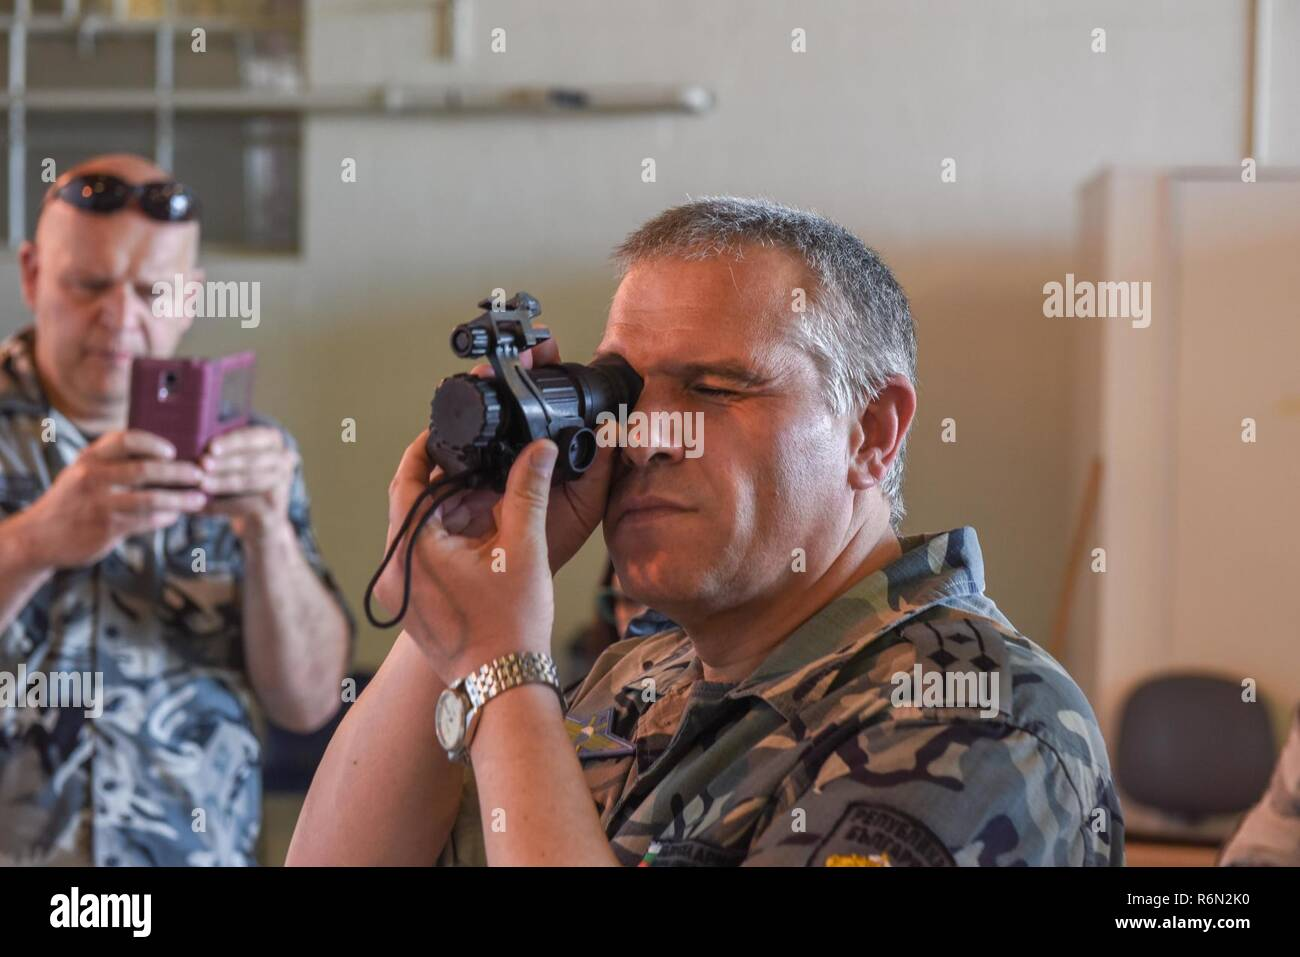 Col. Nikolay Lyaskovski, head of Force Protection in the Branch of Training Department for the Bulgarian Air Force, examines a night vision lens on May 31, 2017 at Berry Field Air National Guard Base, Nashville, Tenn. Tennessee partners with Bulgaria under the State Partnership Program, which is designed to train allied forces, build international relationships, and enhance regional security. Stock Photo